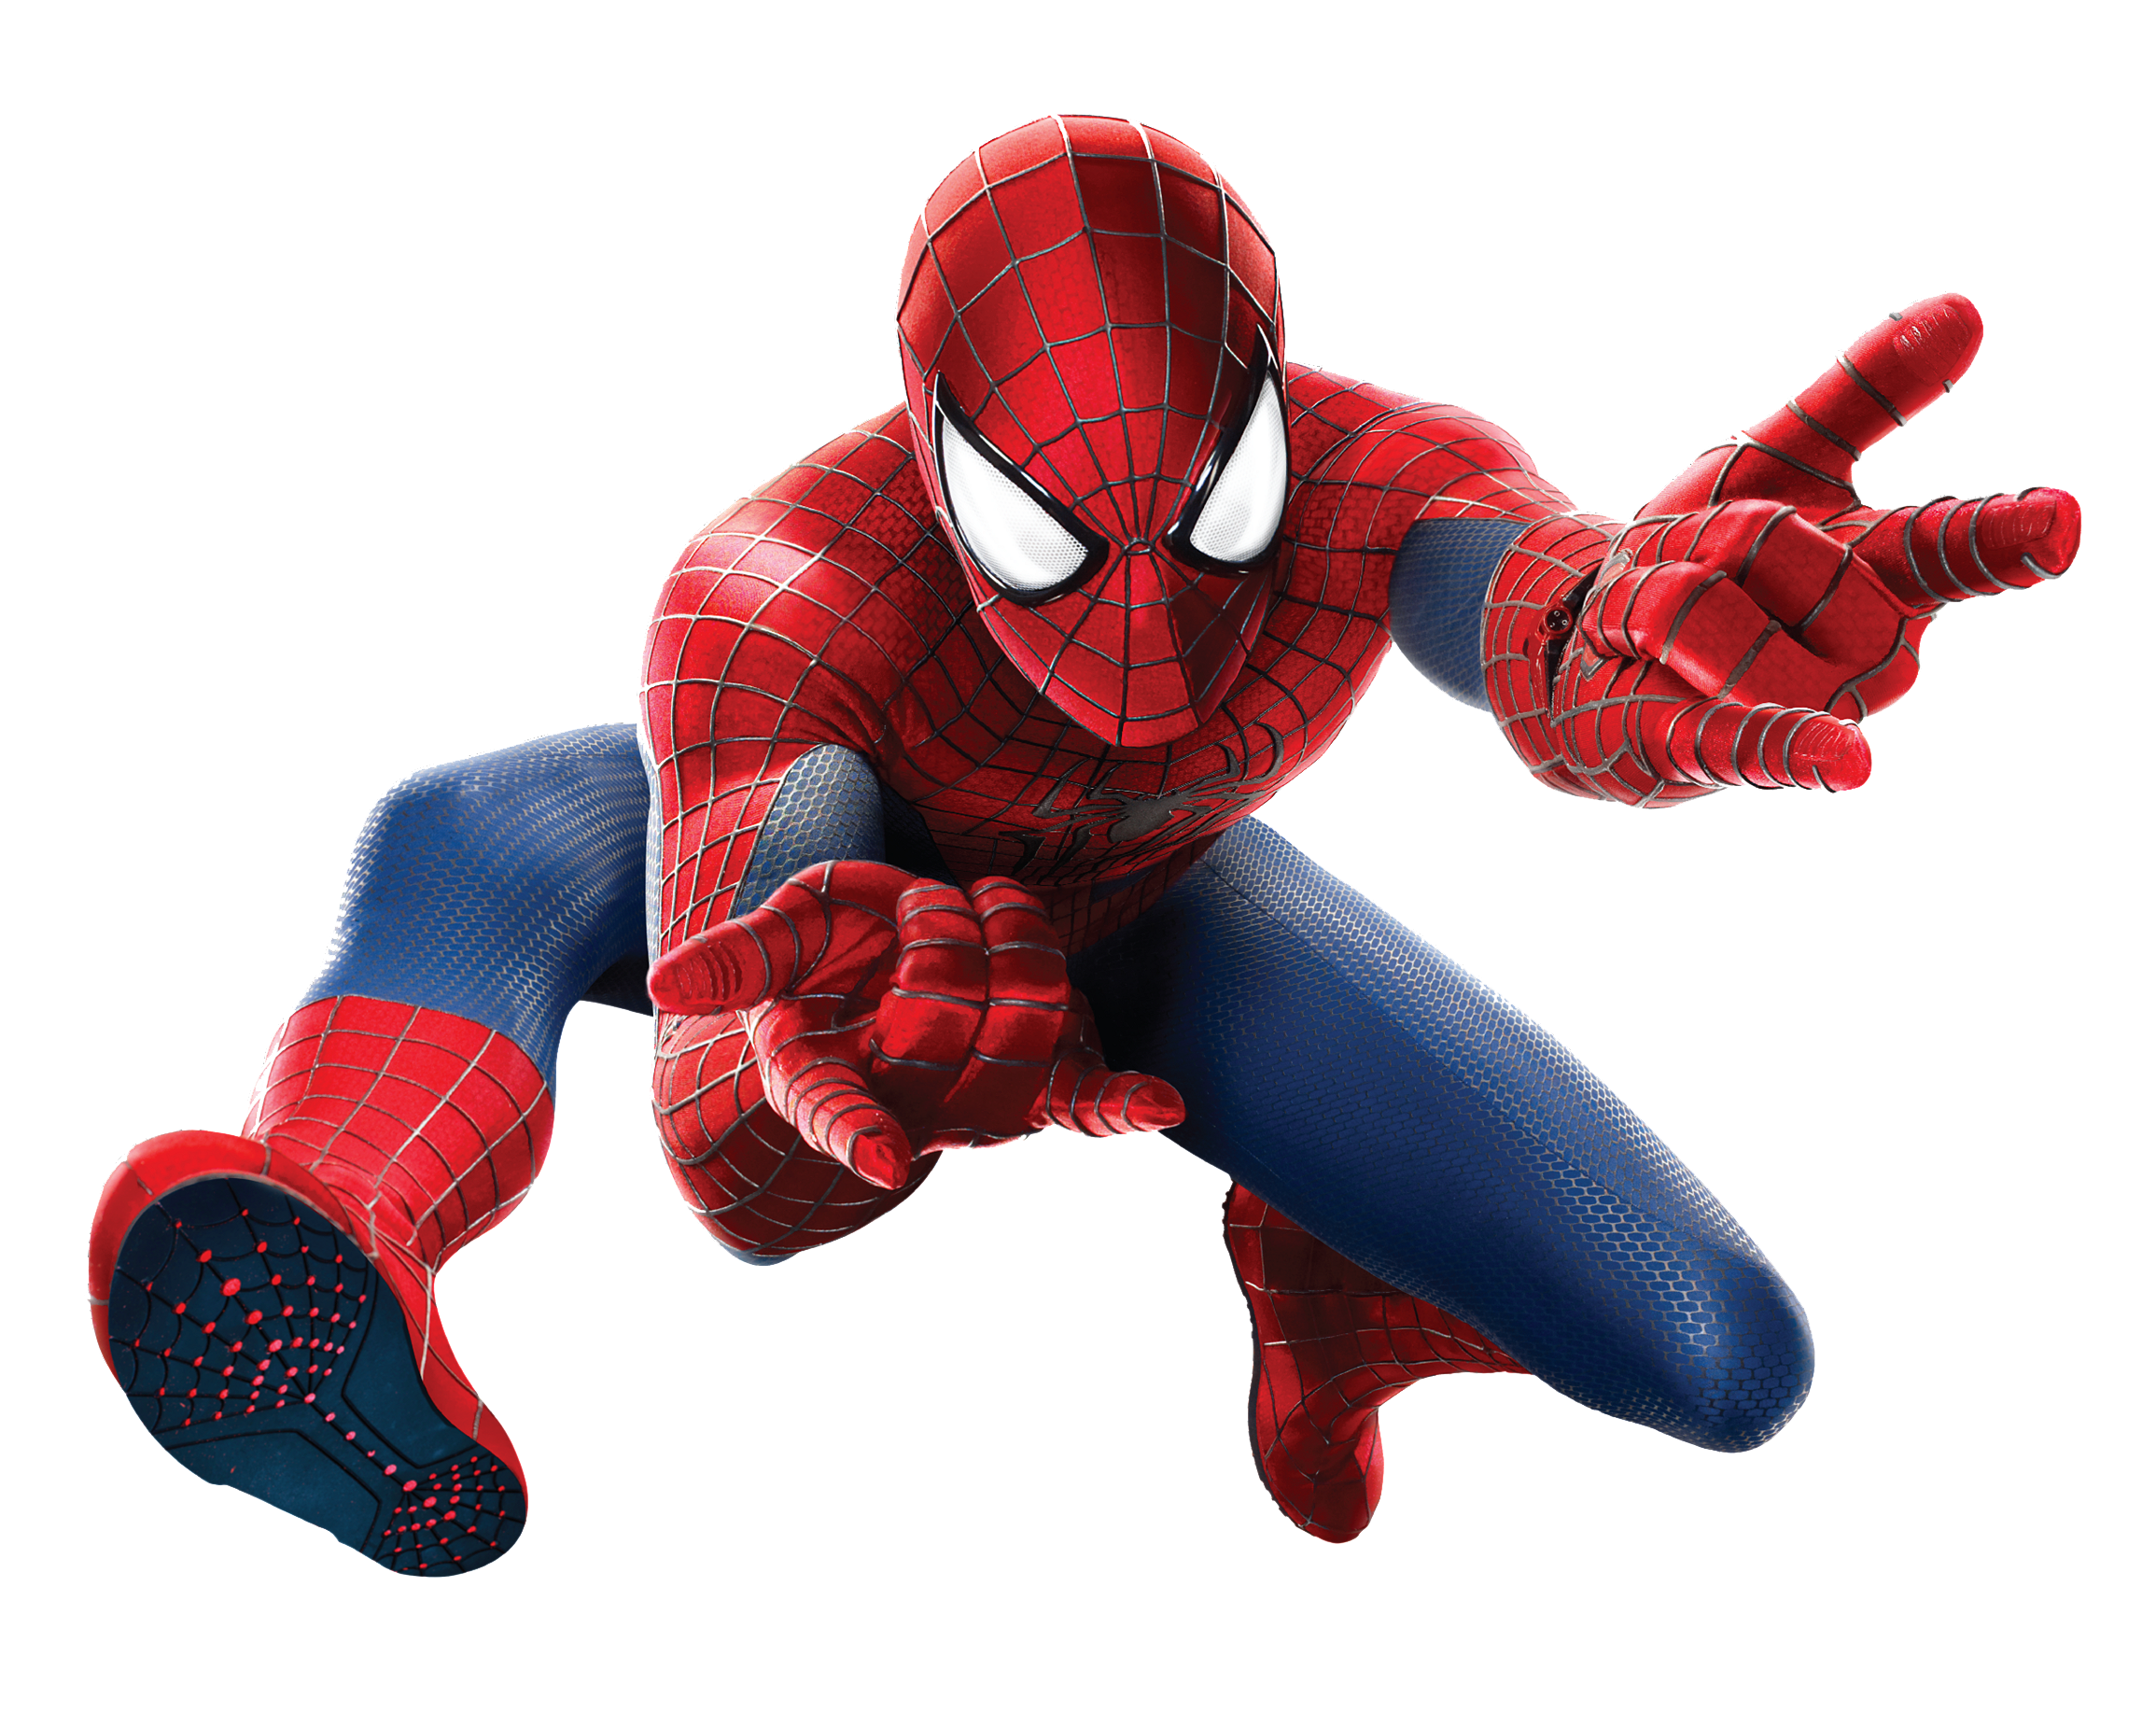 Spider Man Image Download: Download Spider-Man Png Hd HQ PNG Image